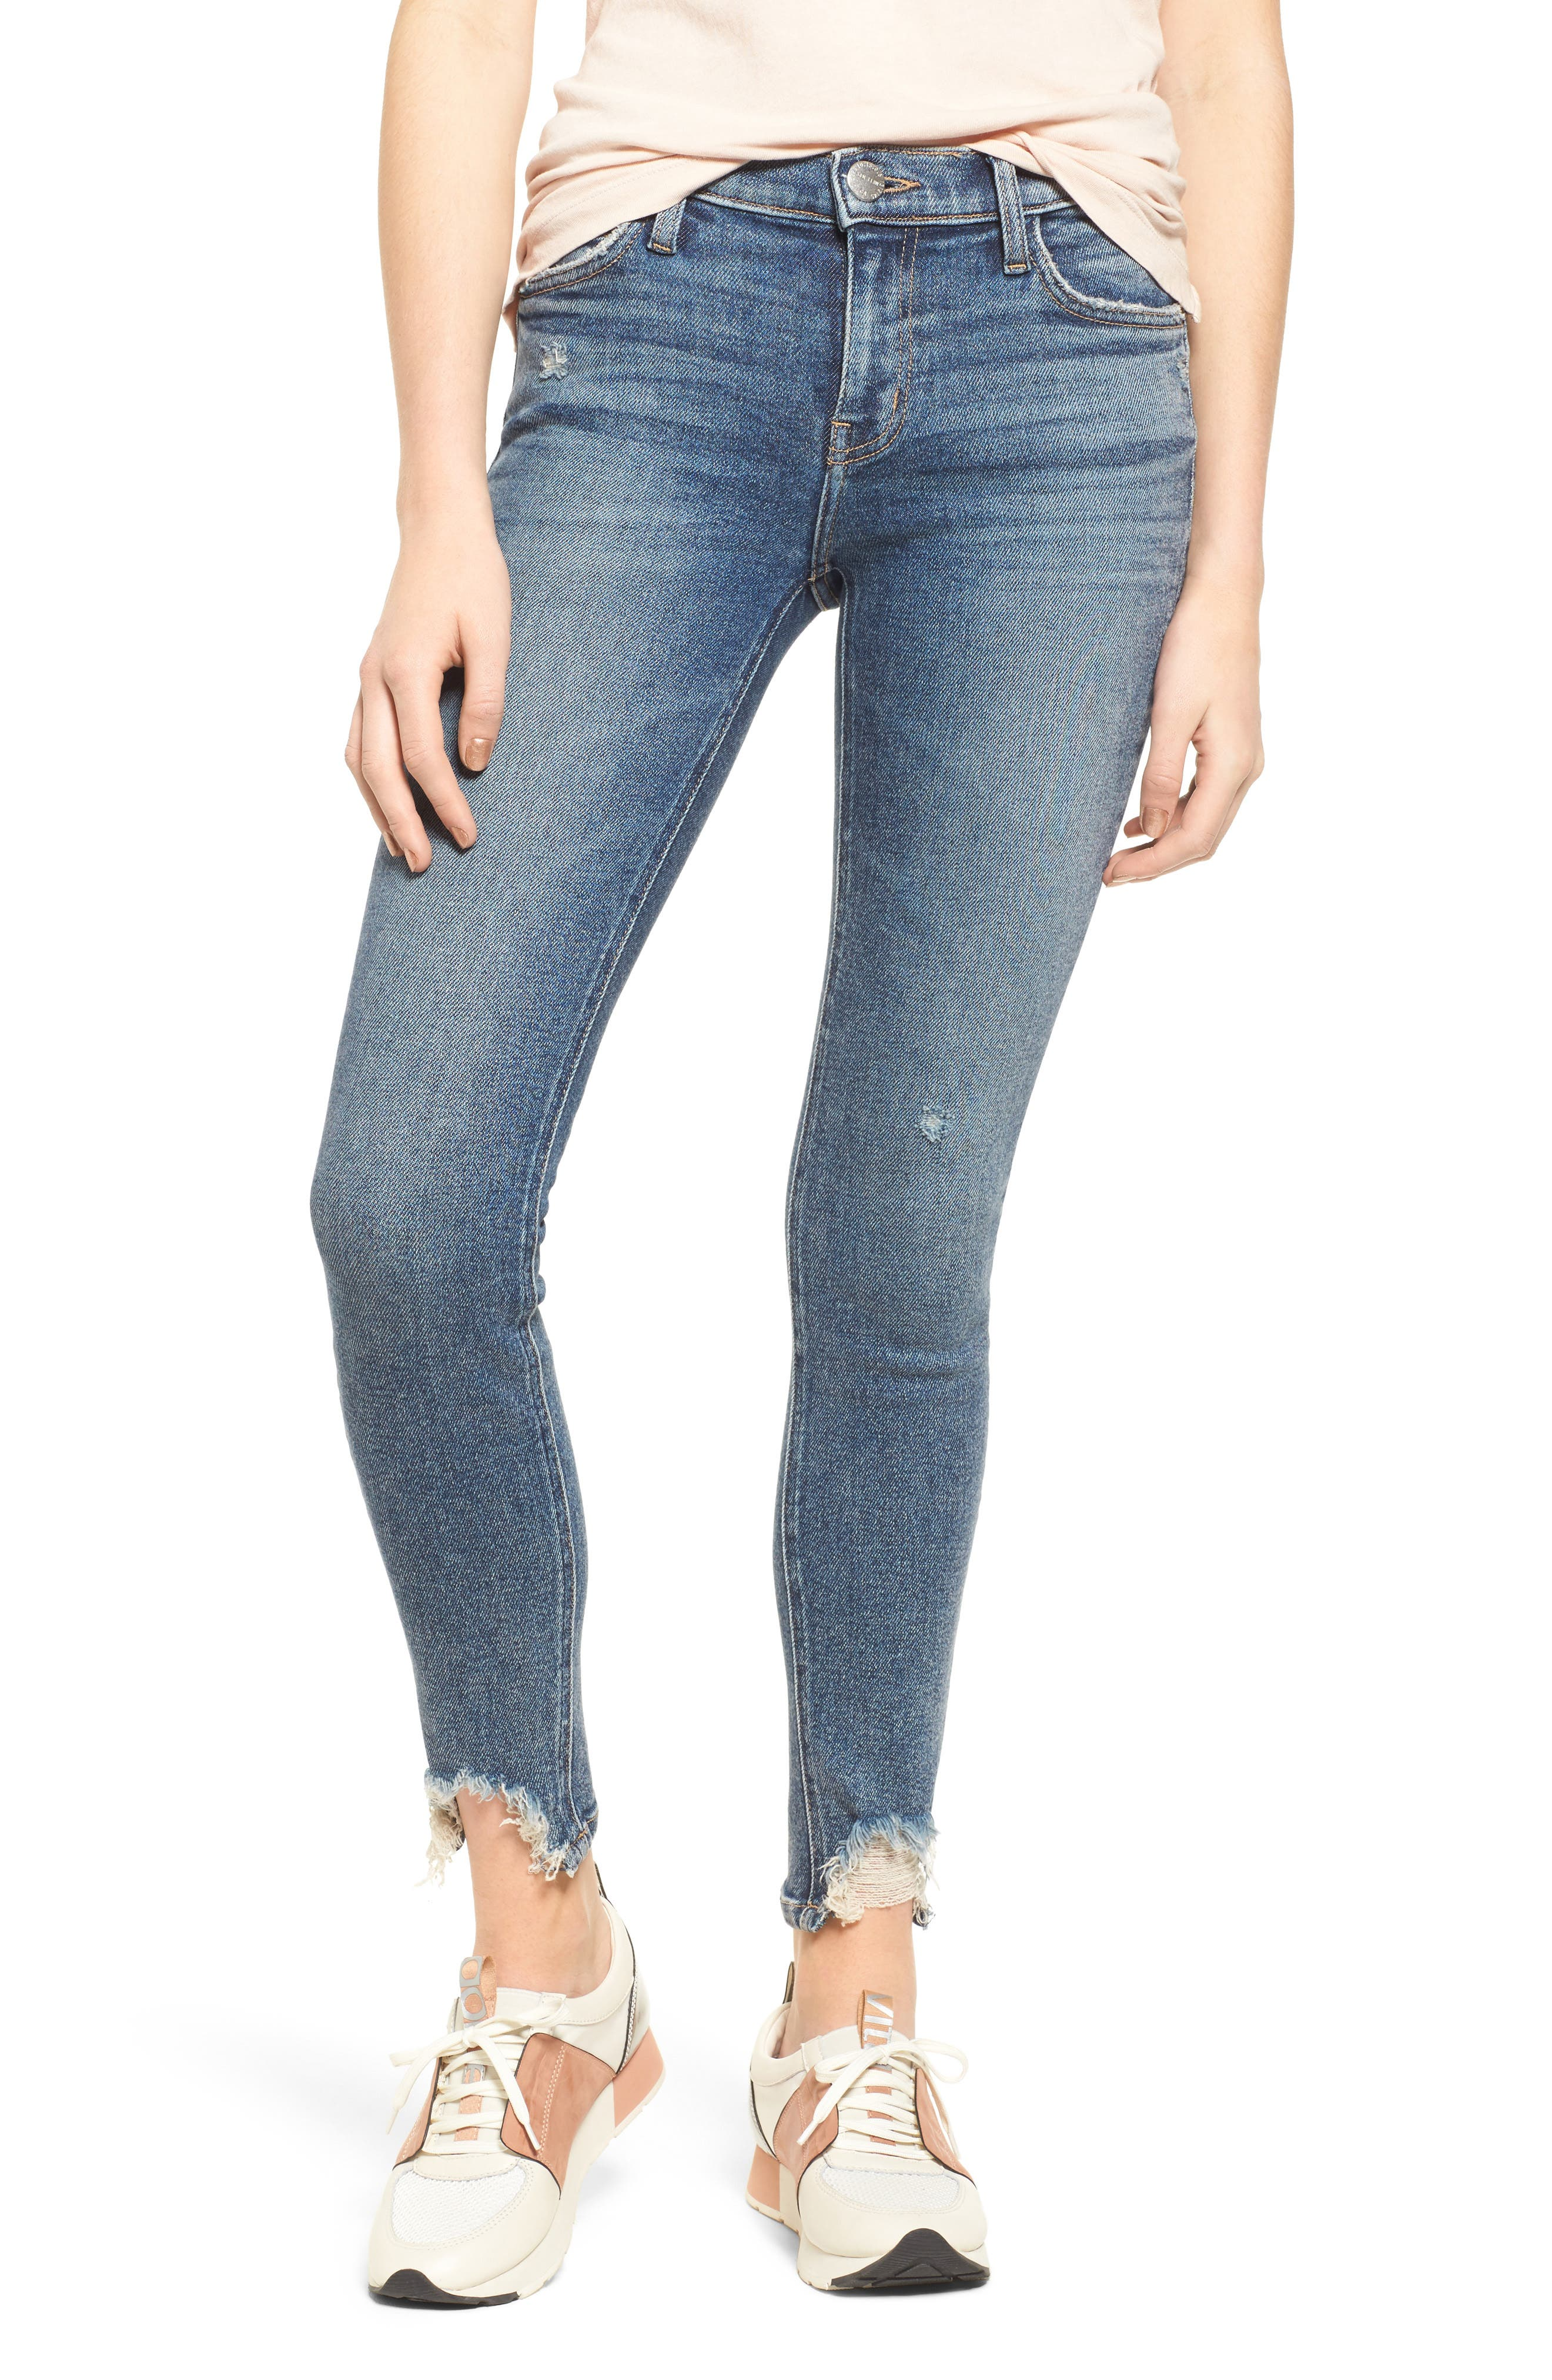 Main Image - Current/Elliott The Stiletto High Waist Ankle Skinny Jeans (Zayden)